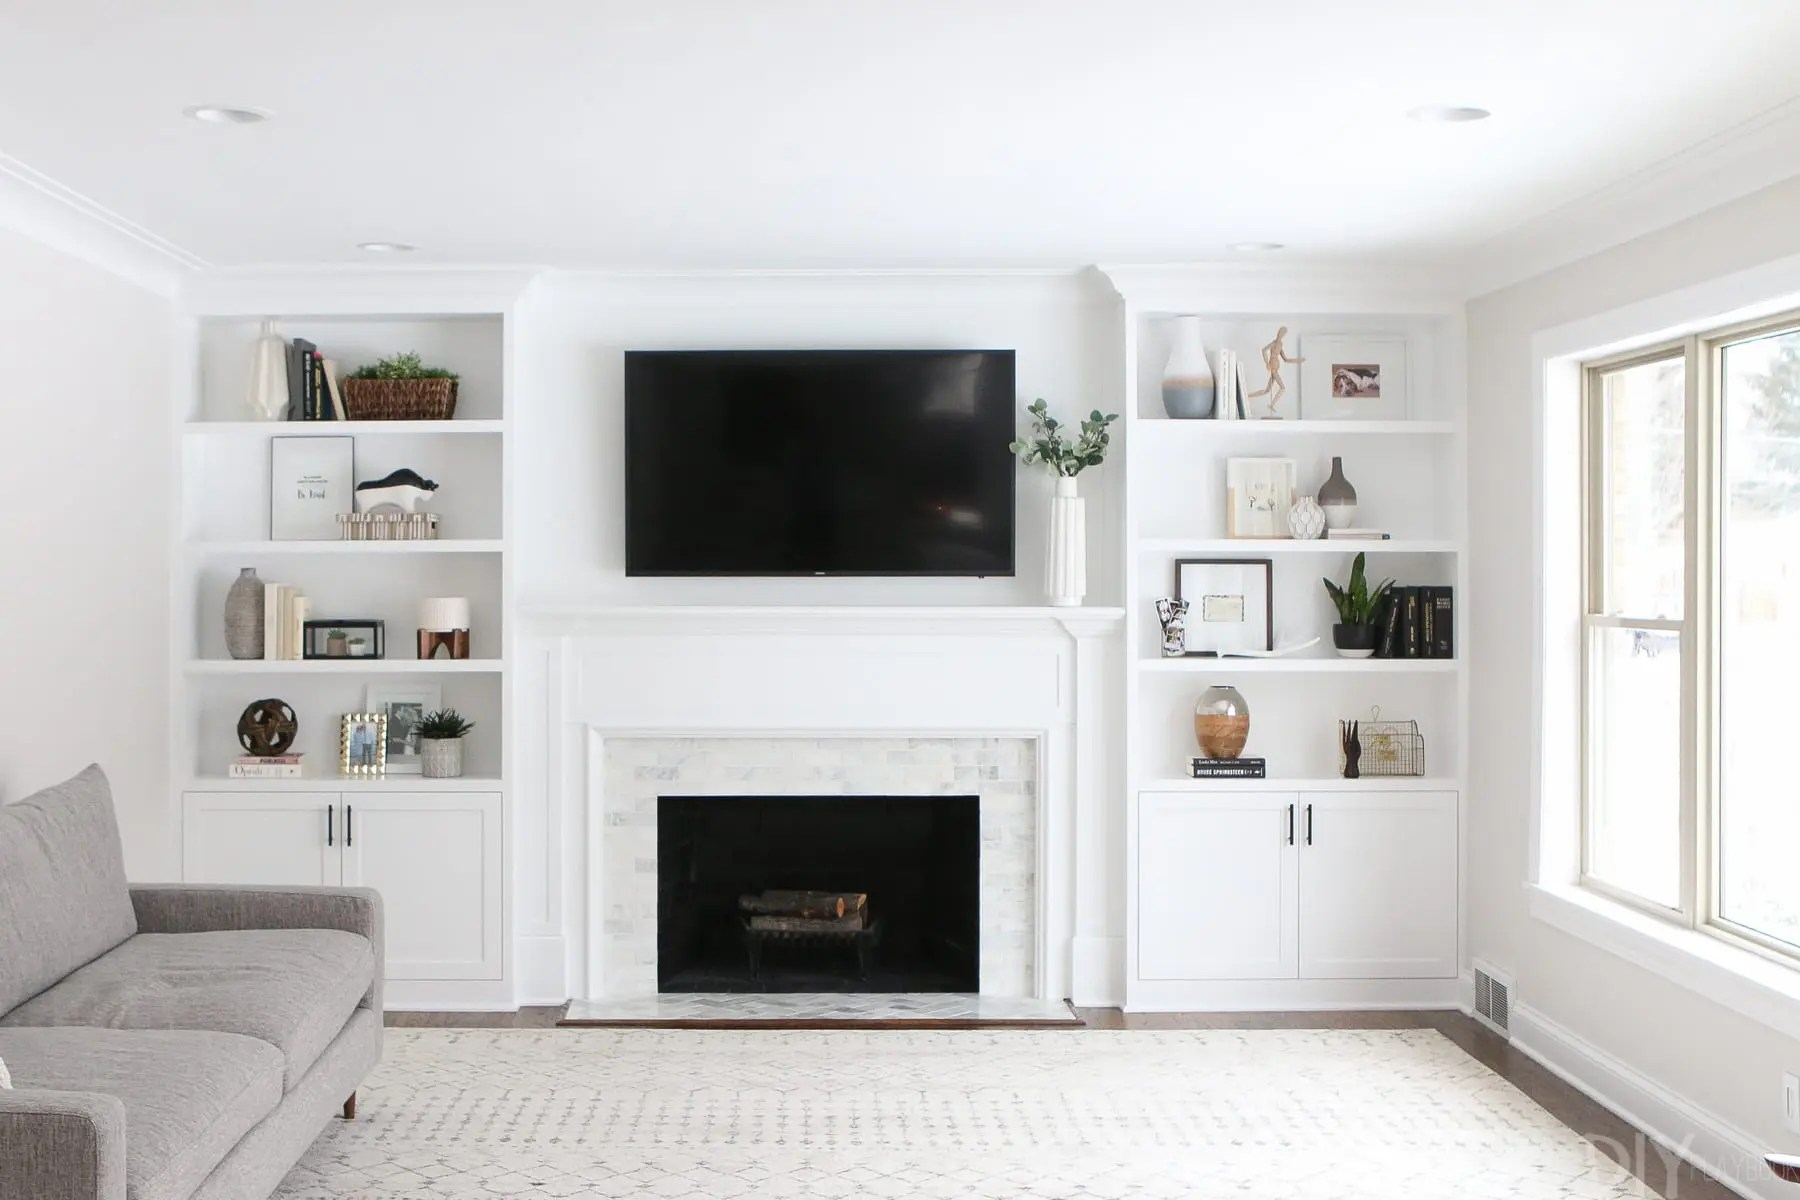 The Dos And Don'ts Of Decorating Built-In Shelves